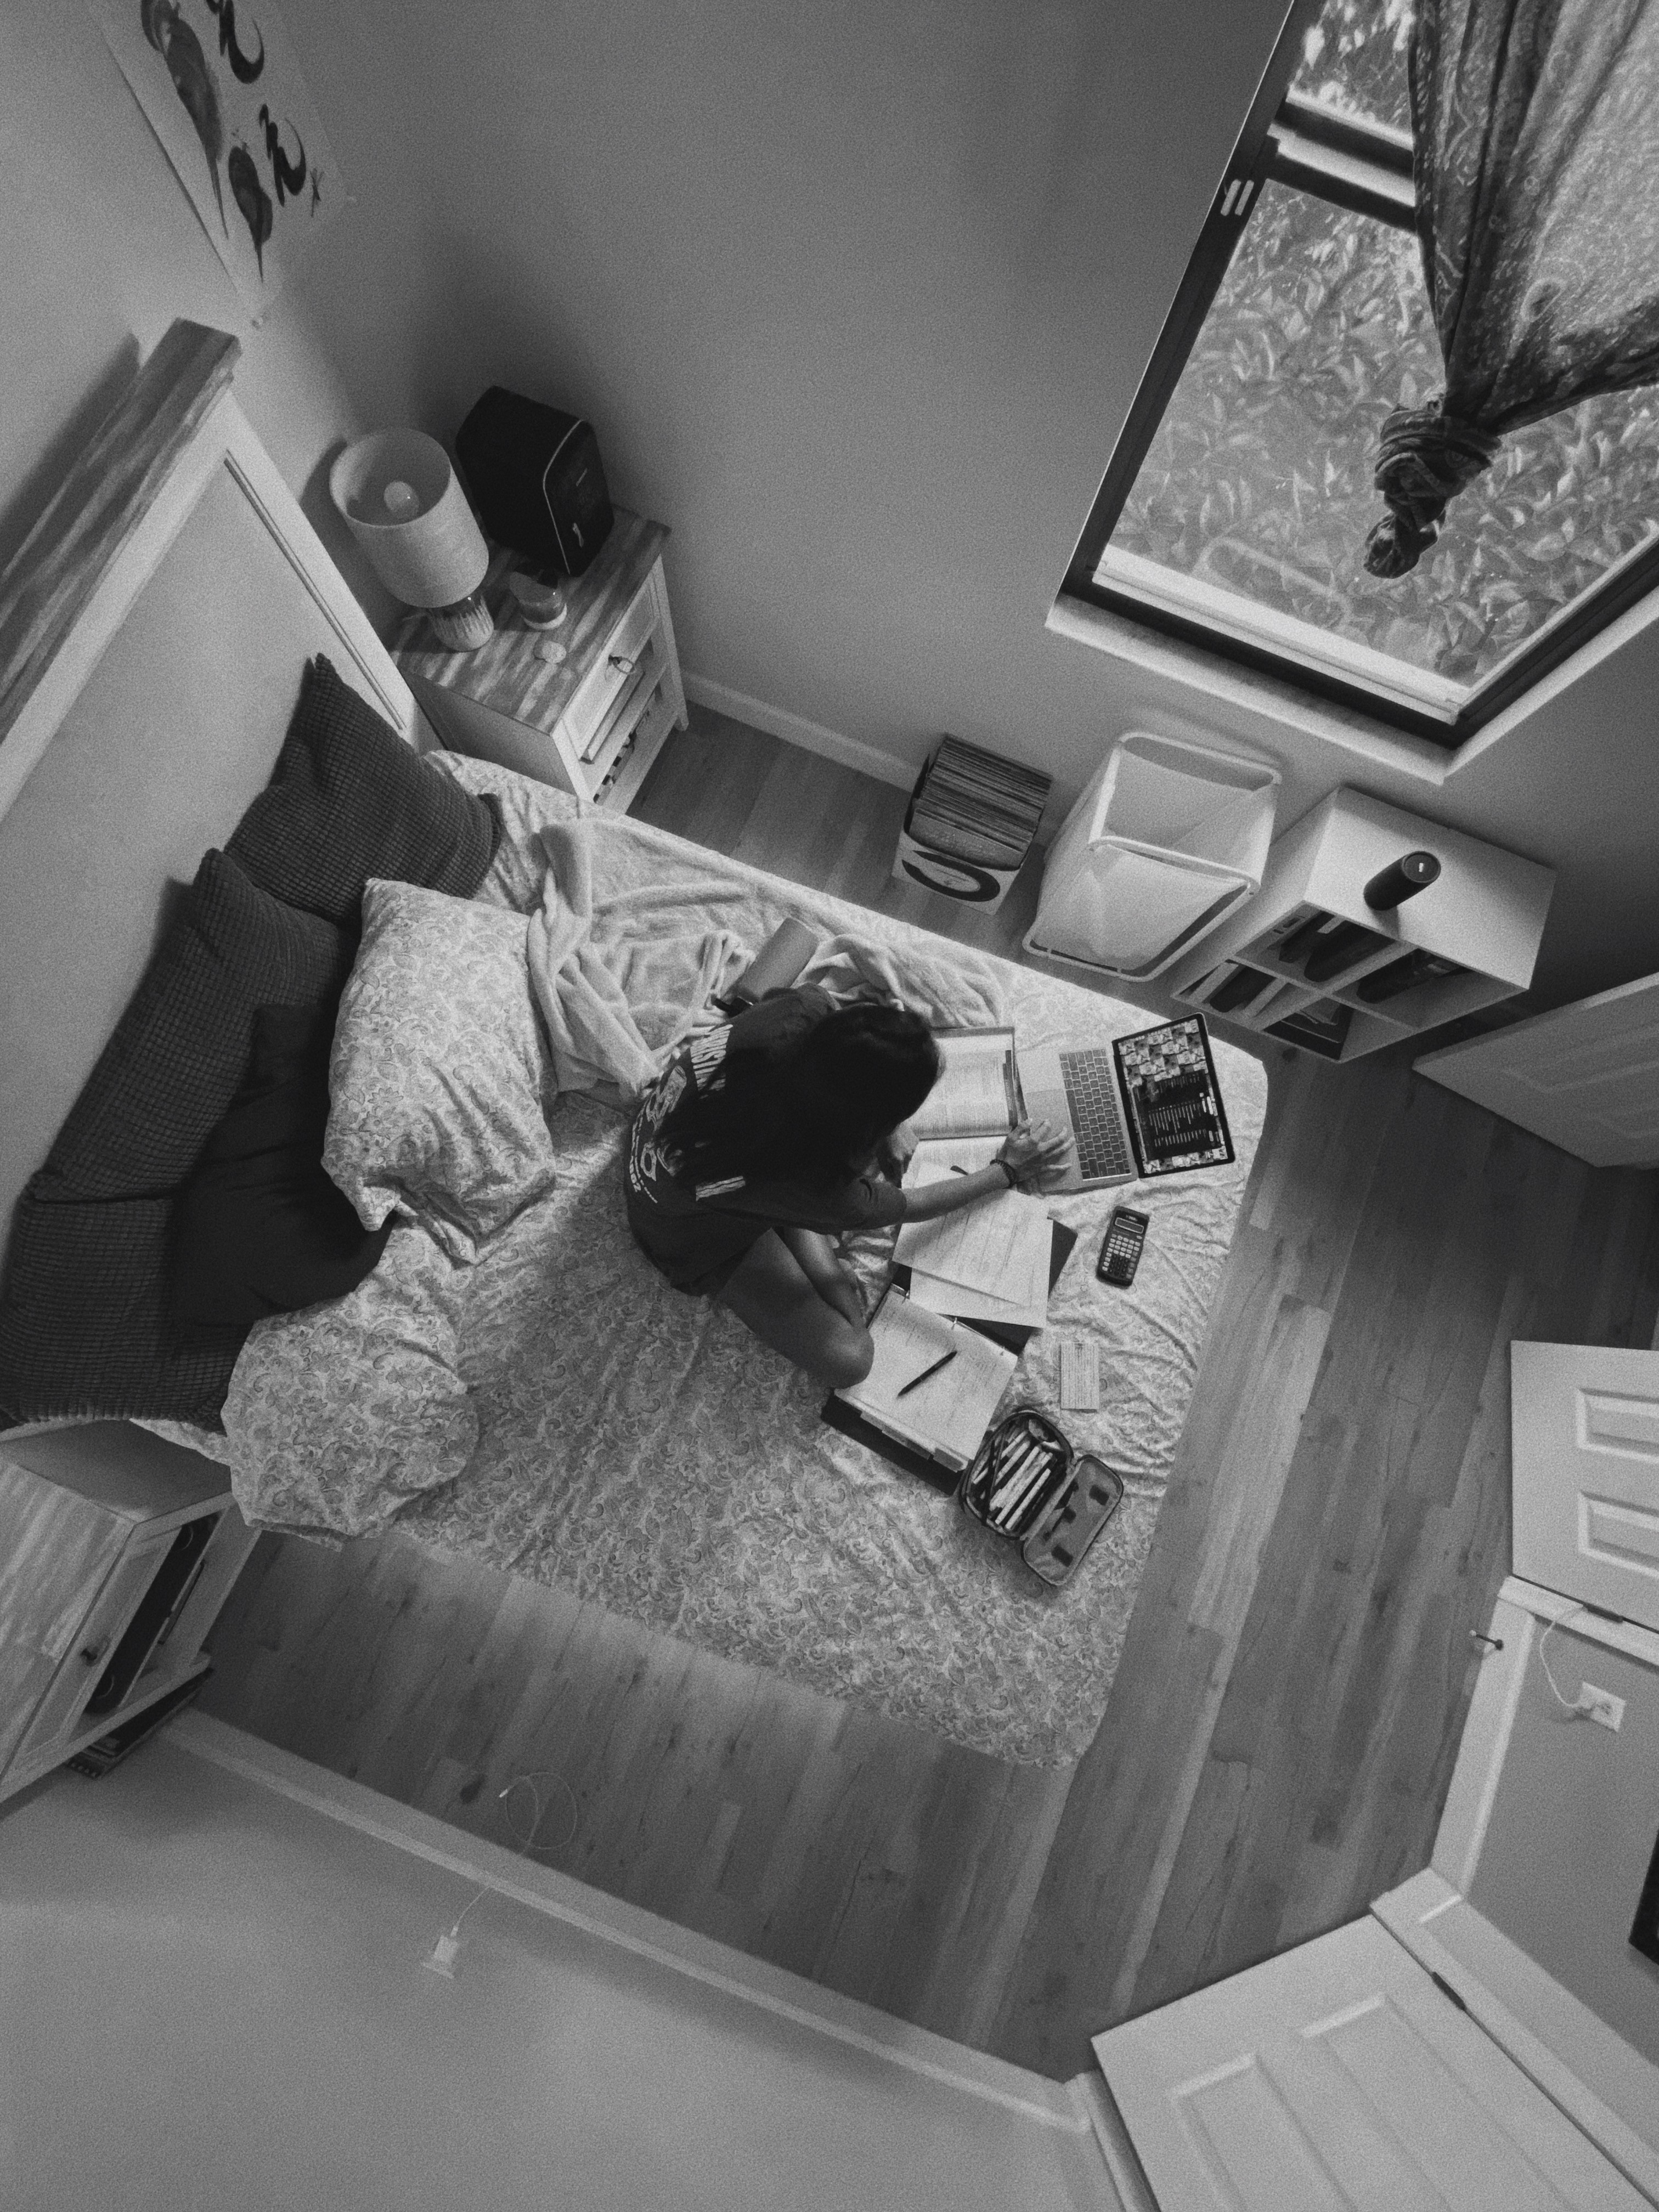 A woman sits alone in her bedroom typing on her computer.)